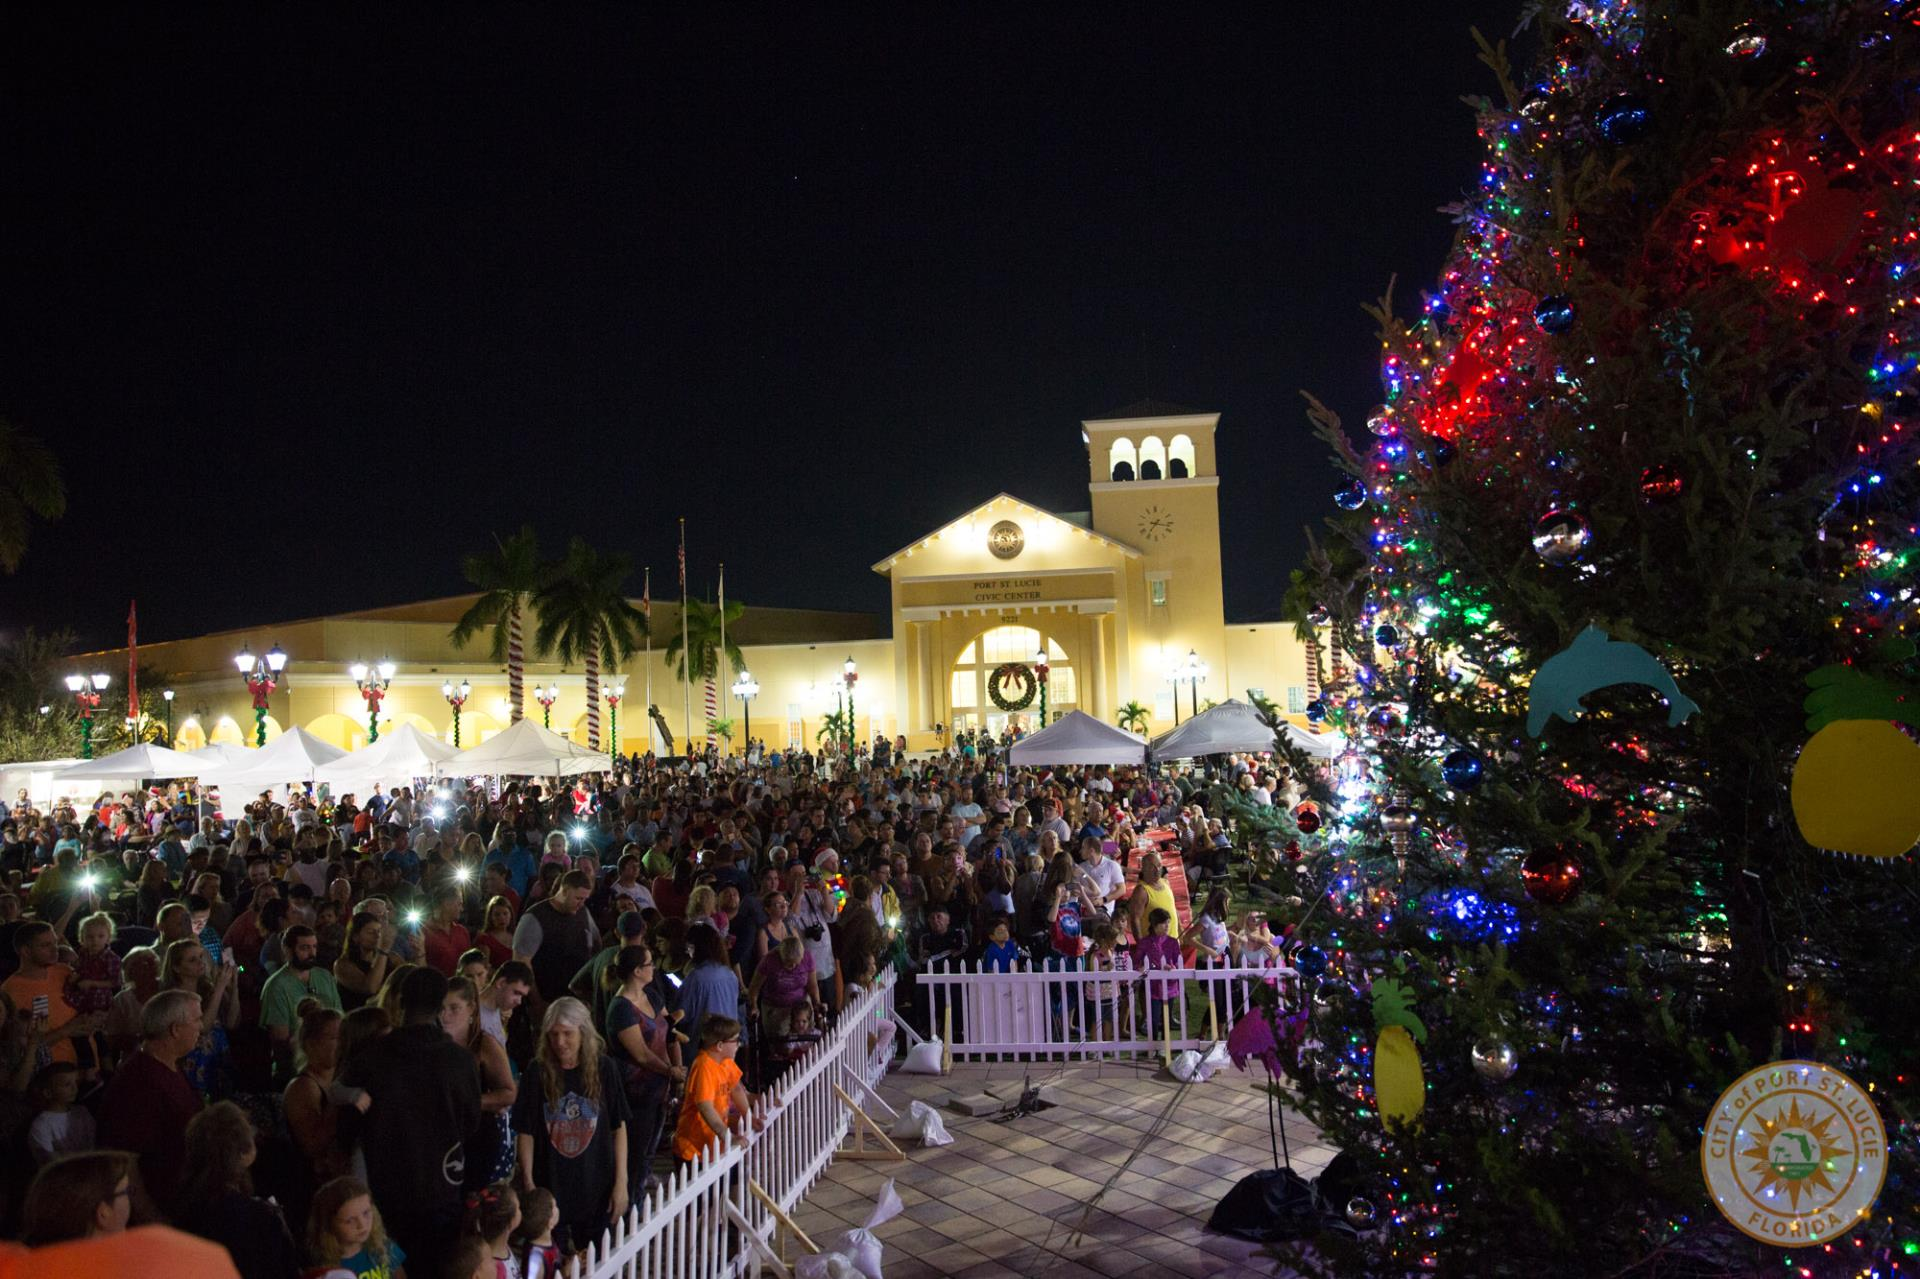 Crowd next to the holiday tree